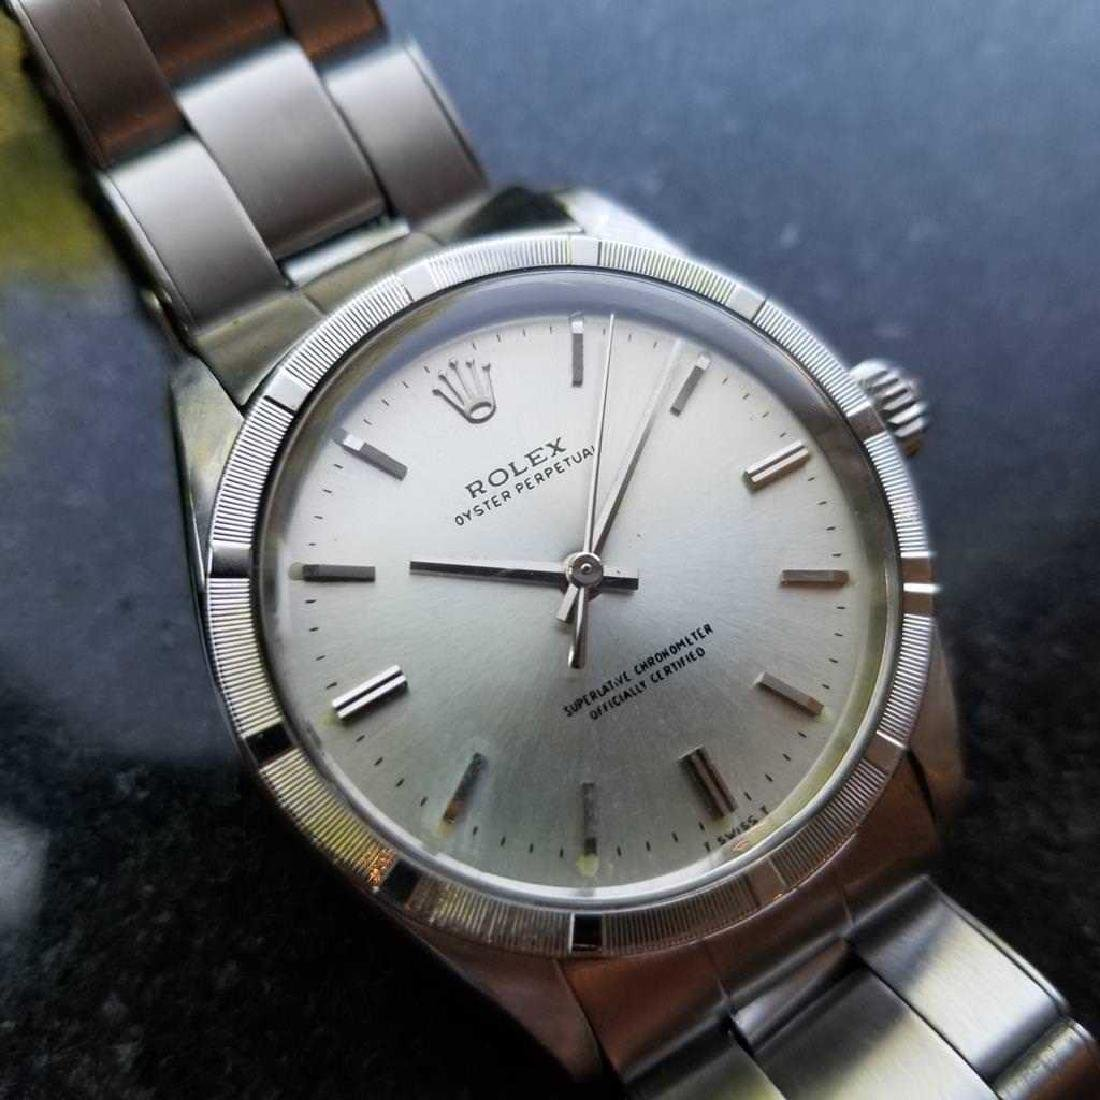 ROLEX Men's Oyster Perpetual 1007 Automatic cal.1570 - 2